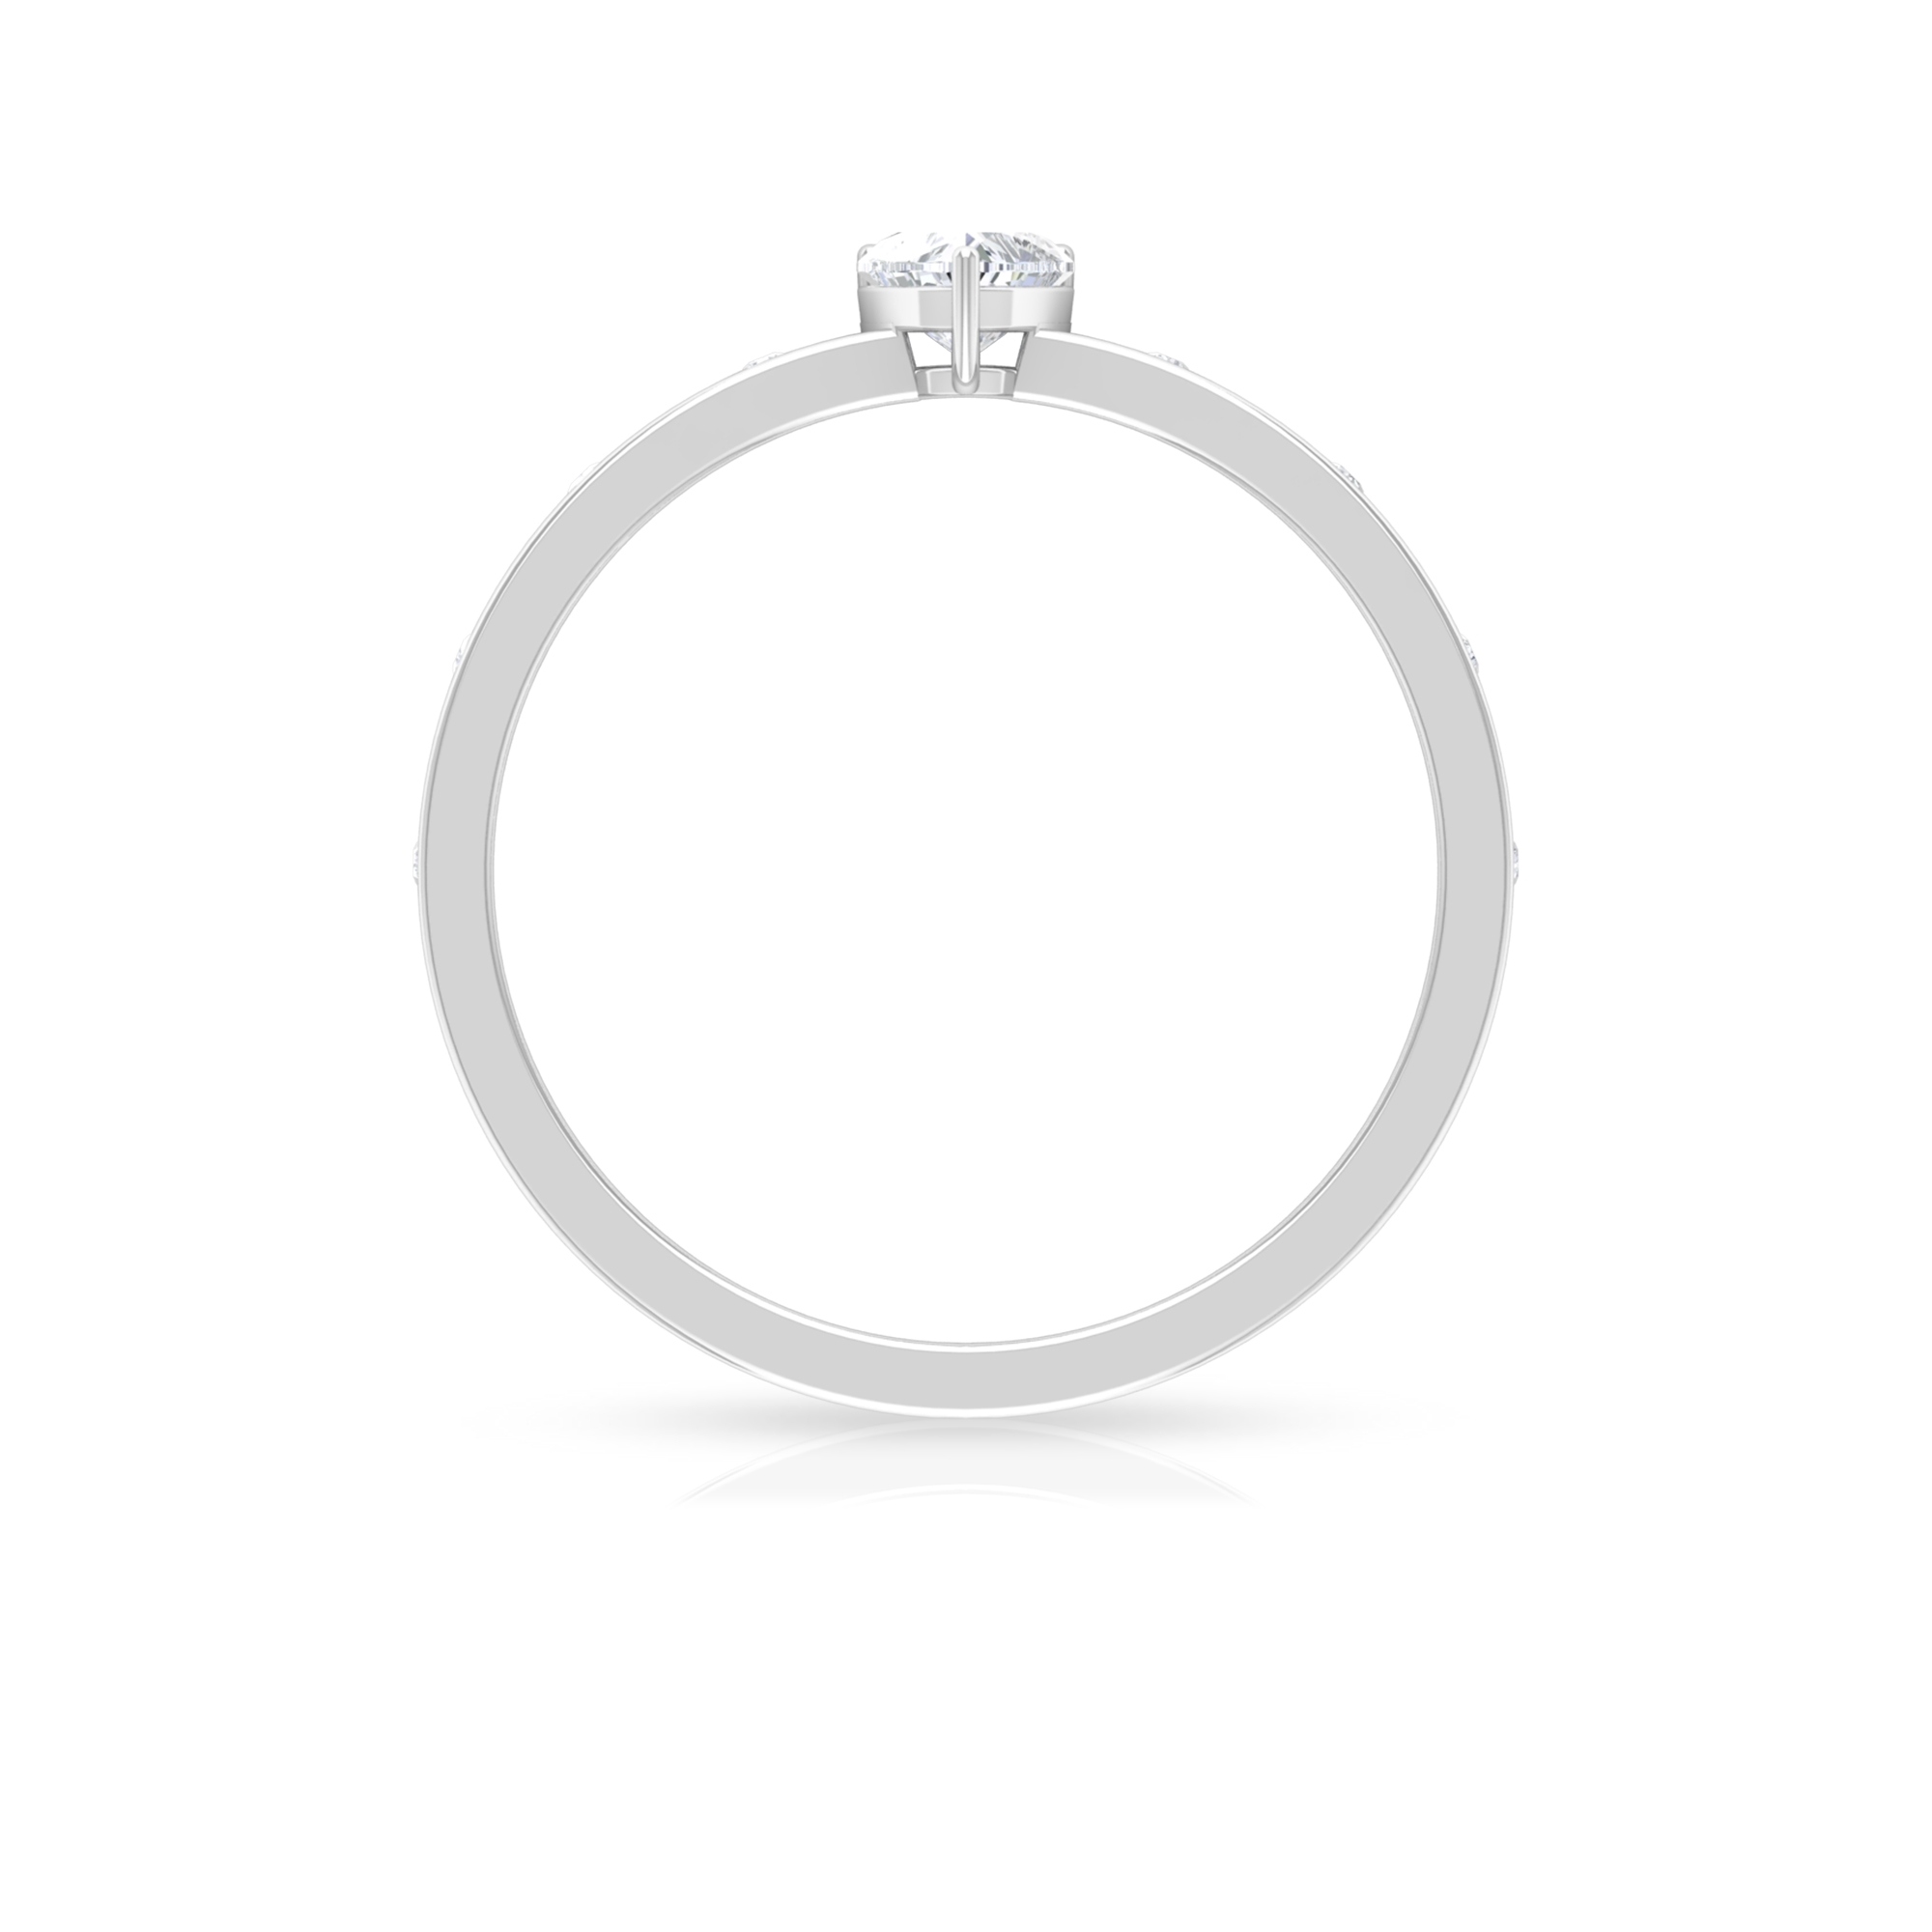 Three Prong Basket Set 4 MM Heart Solitaire Diamond Ring with Sleek Accent